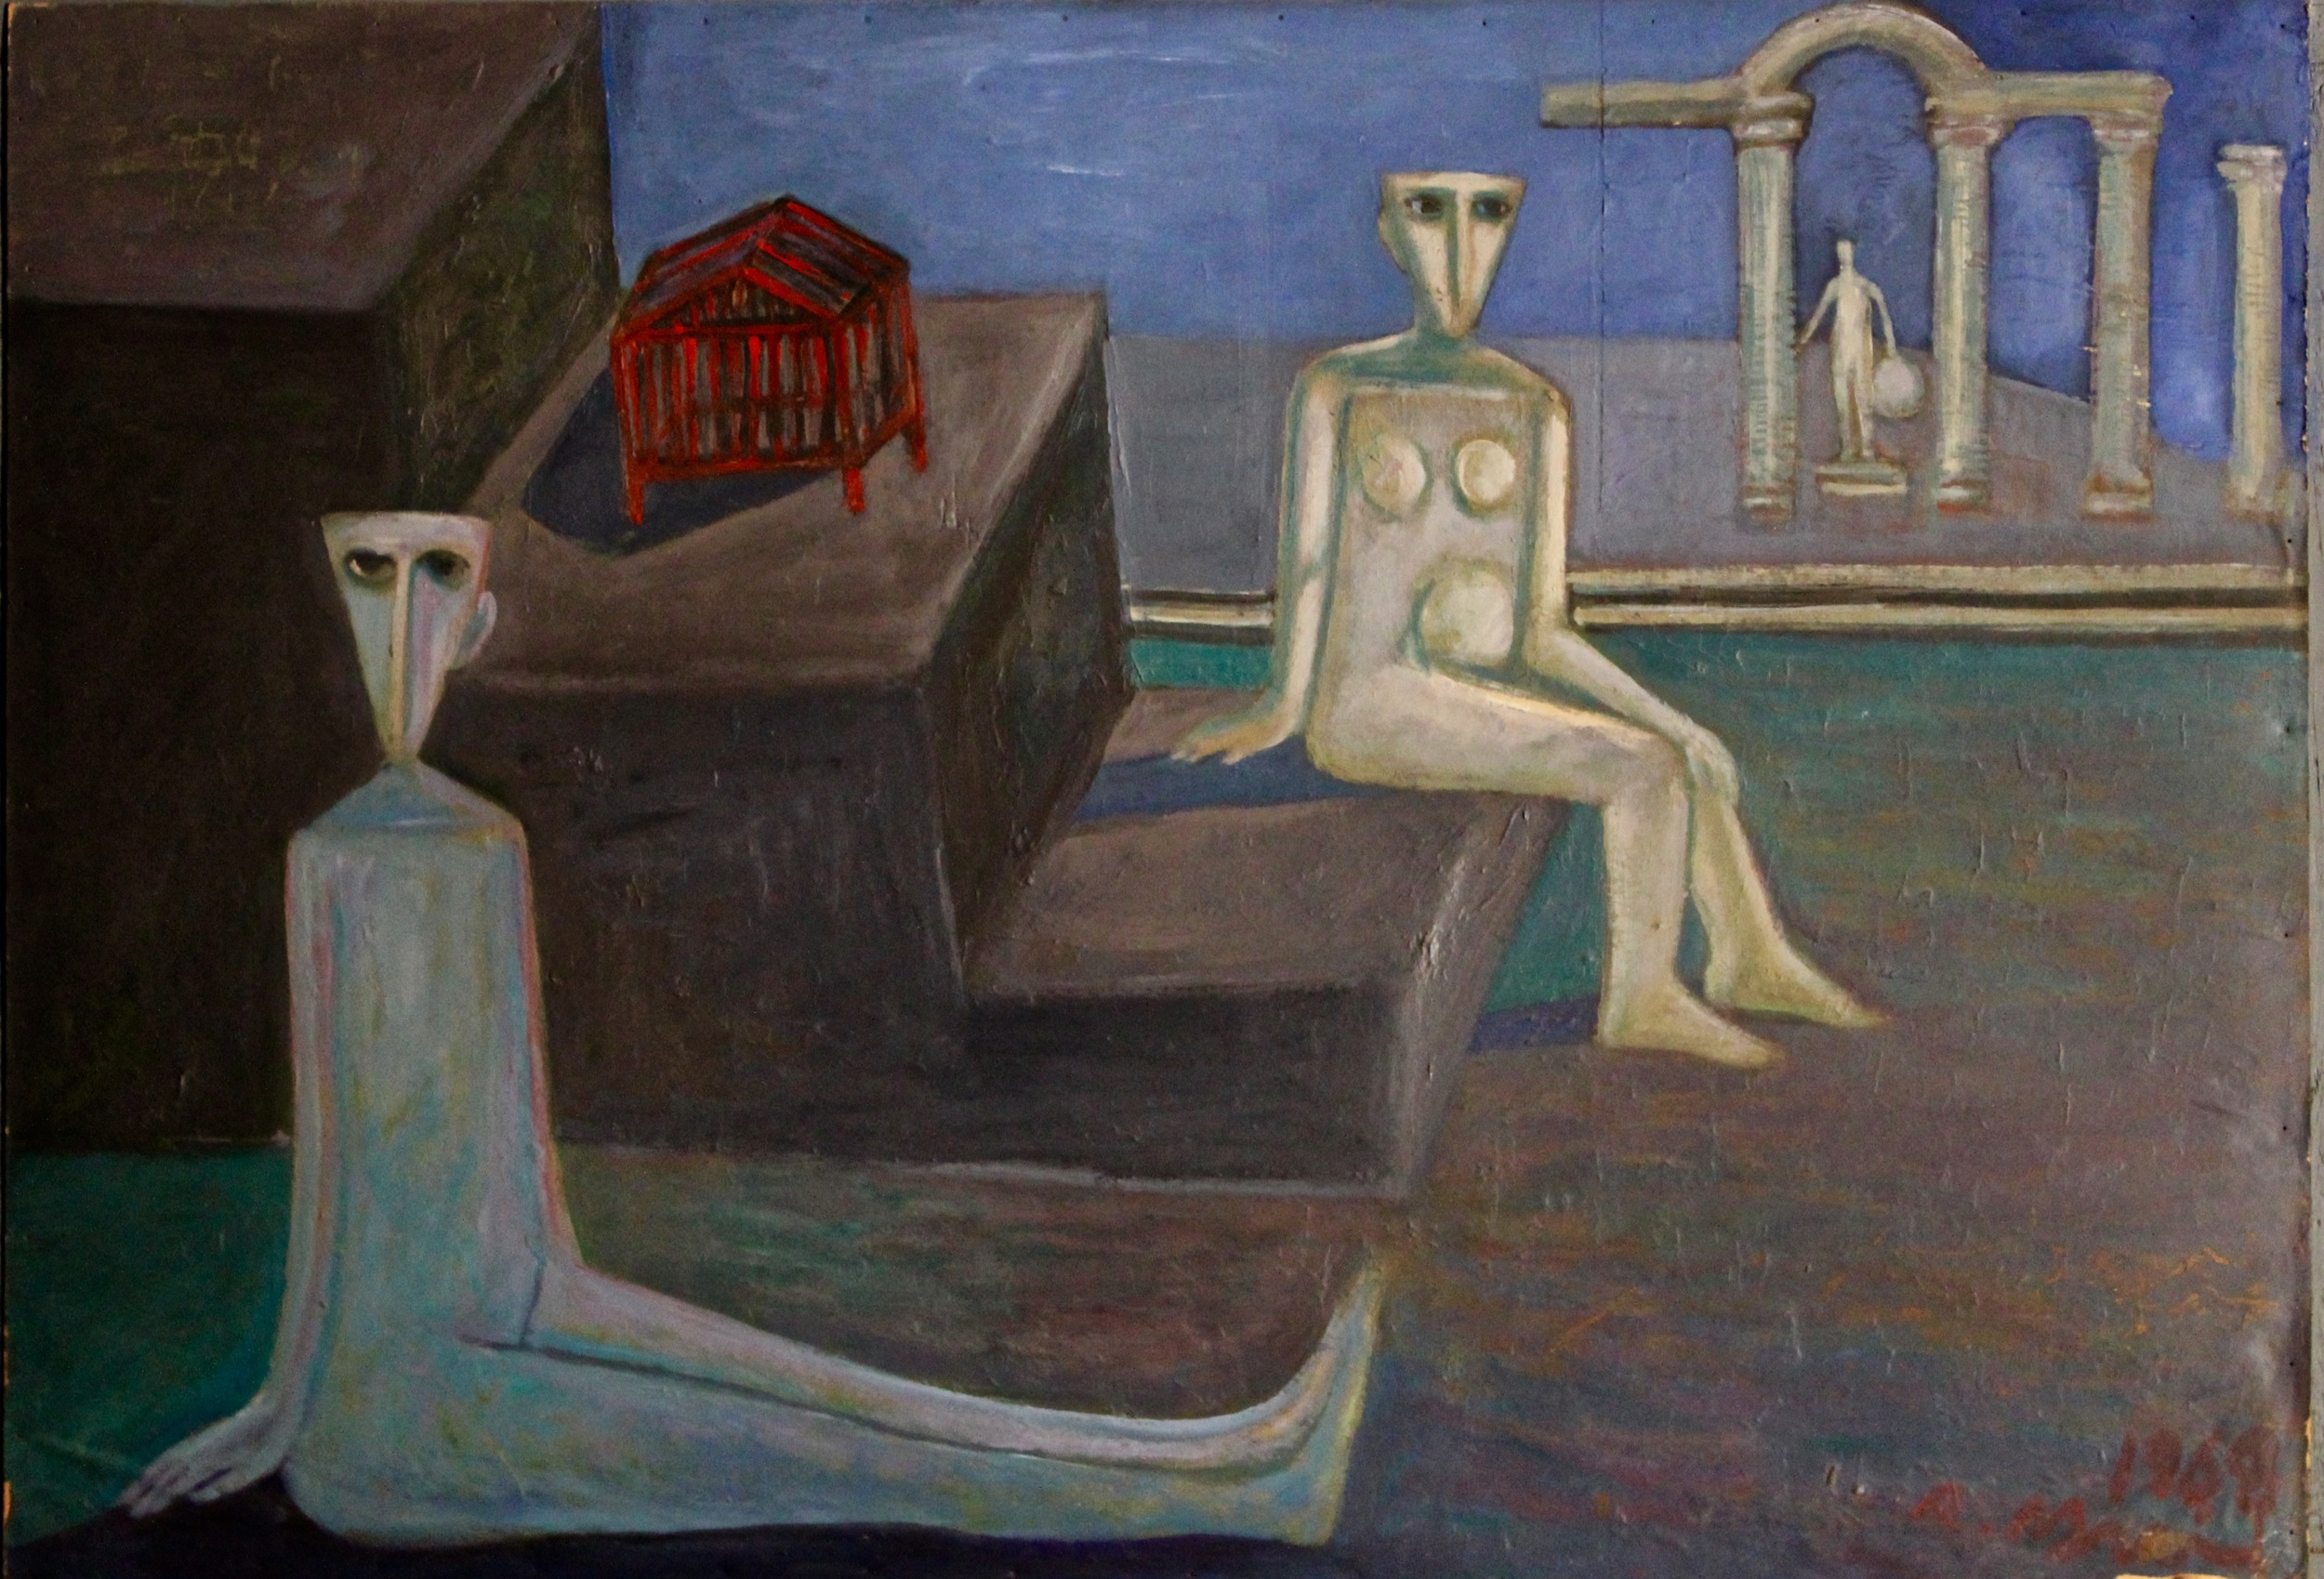 Ahmed Morsi, Red Cage, 1968, Oil on wood, 70 x 100 cm.